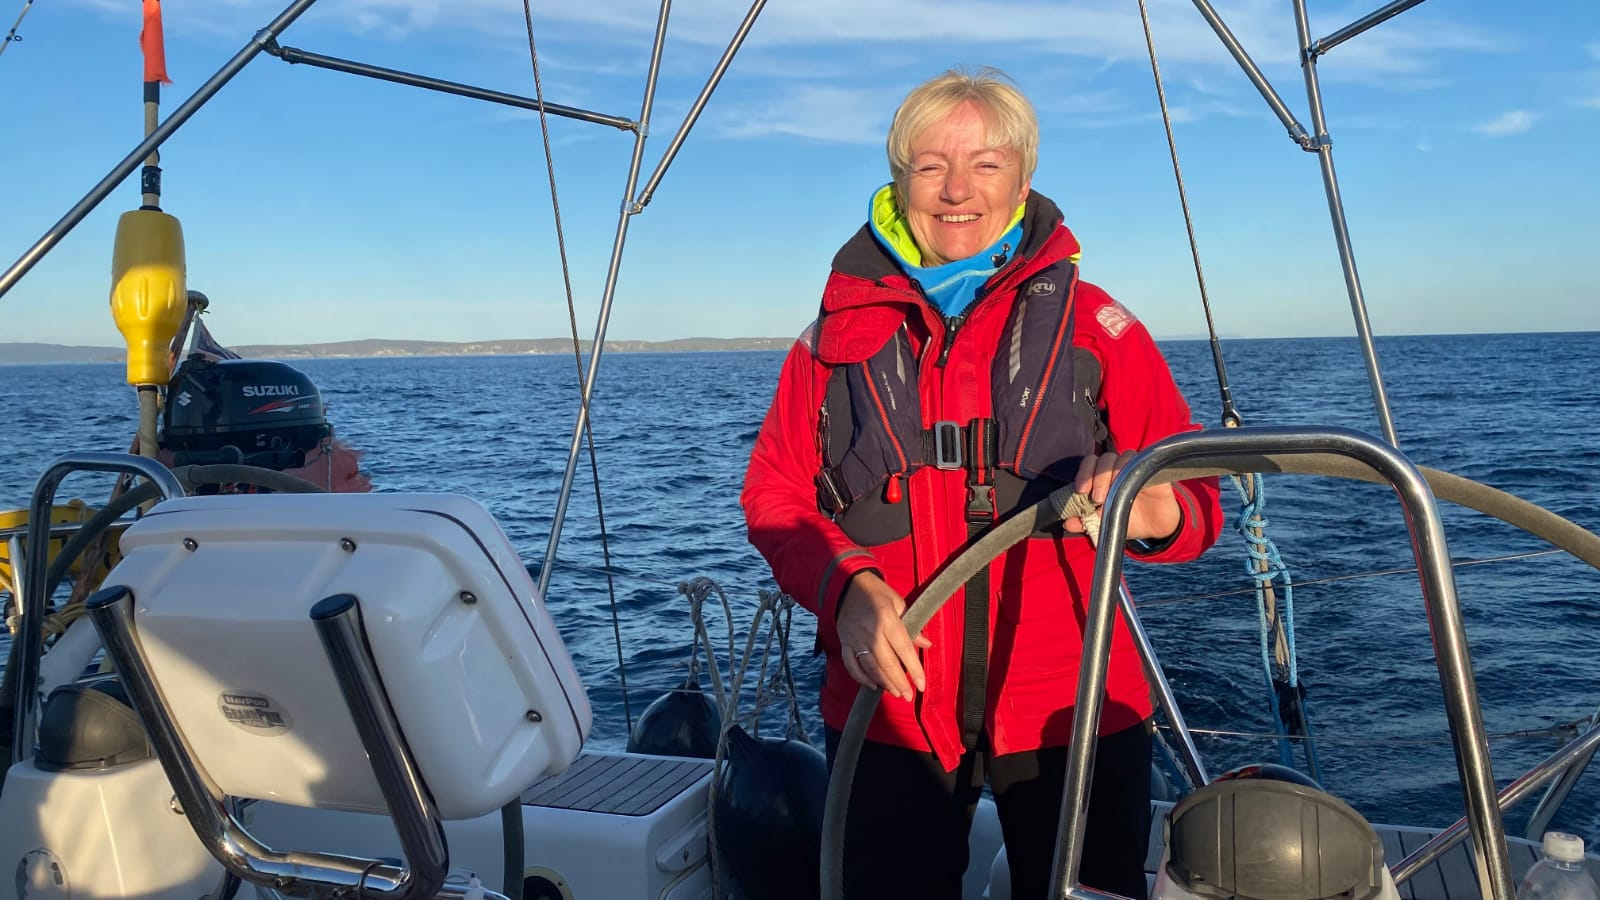 North Star on voyage to St. Kilda, Lady at tje helm